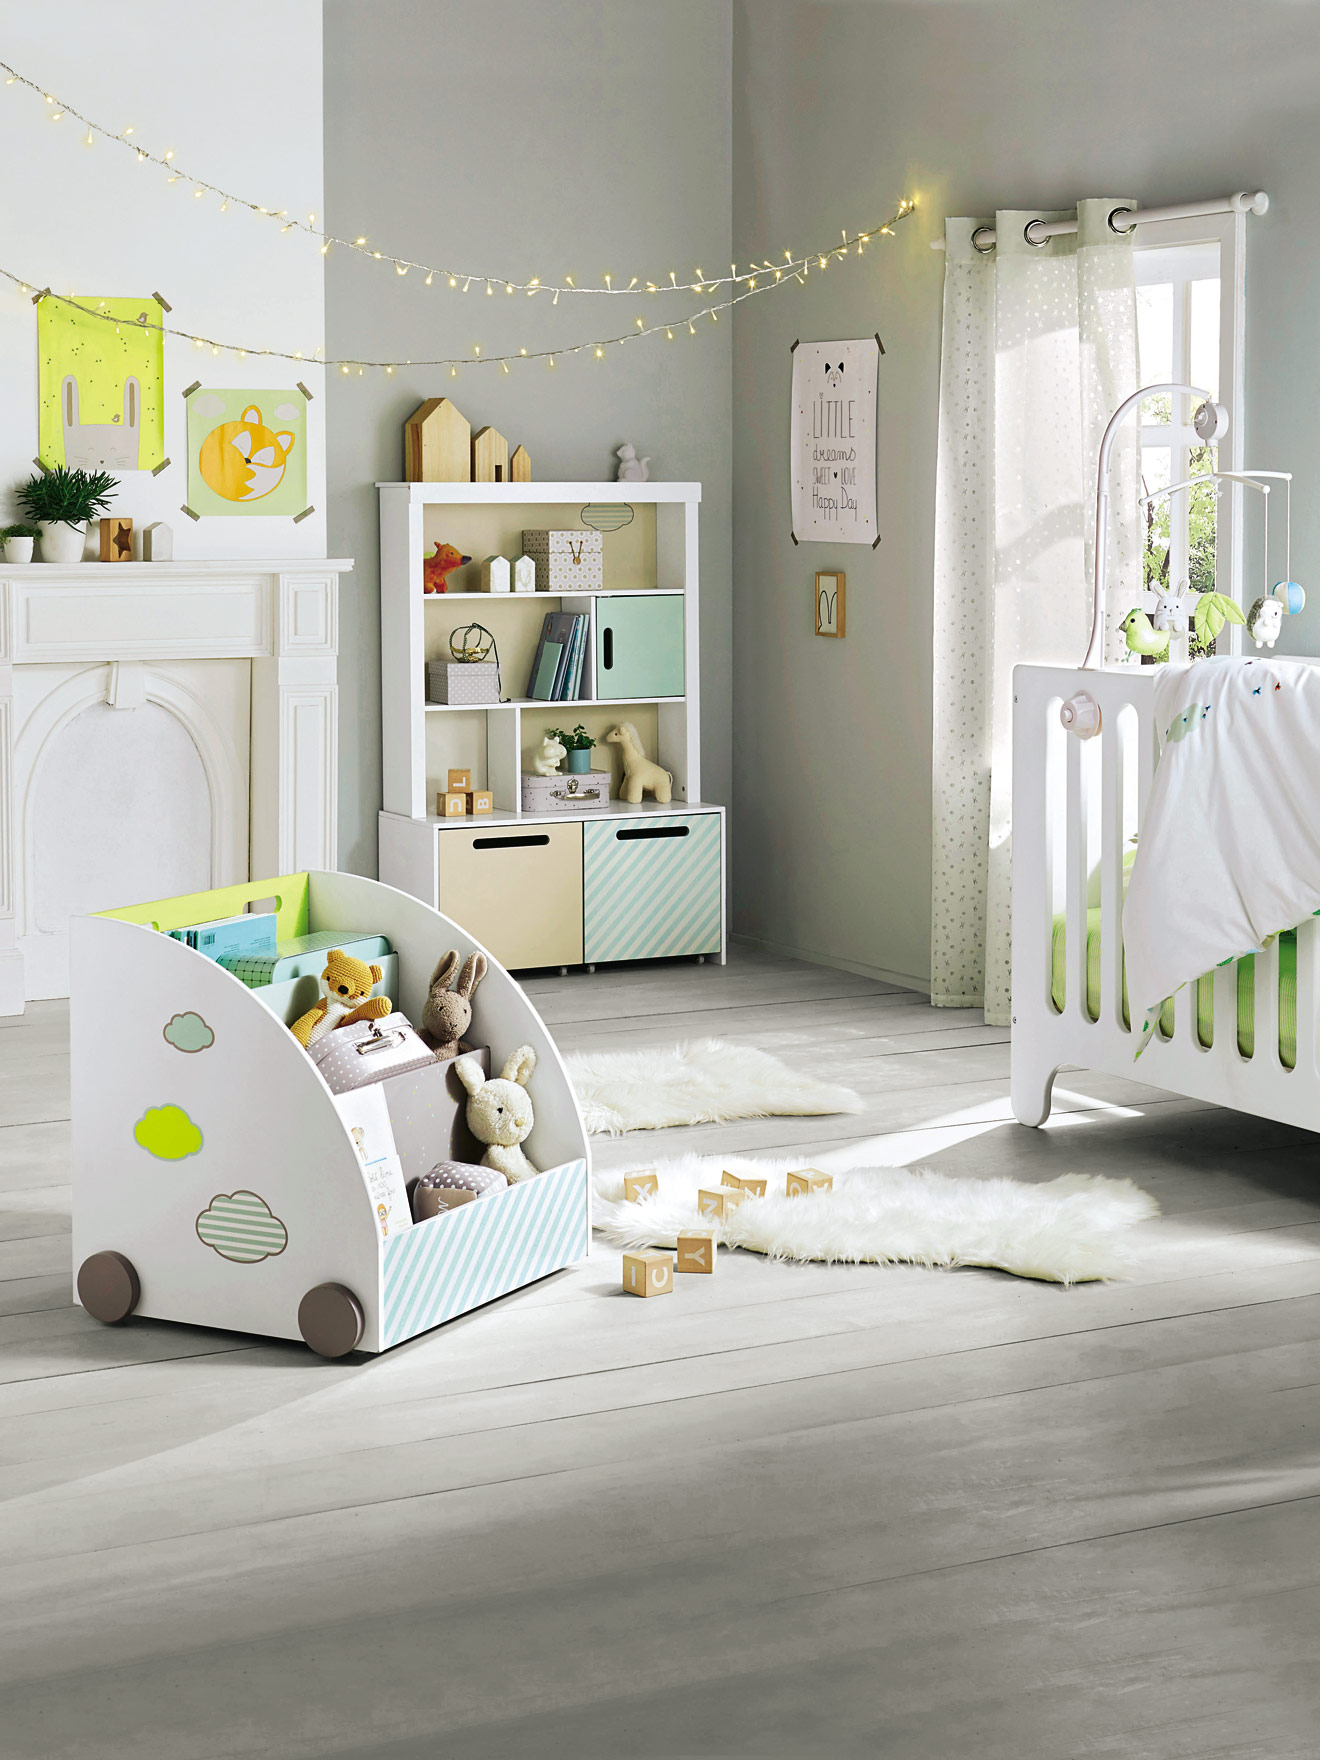 Awesome Vertbaudet Deco Chambre Bebe 2 Images - House Design ...